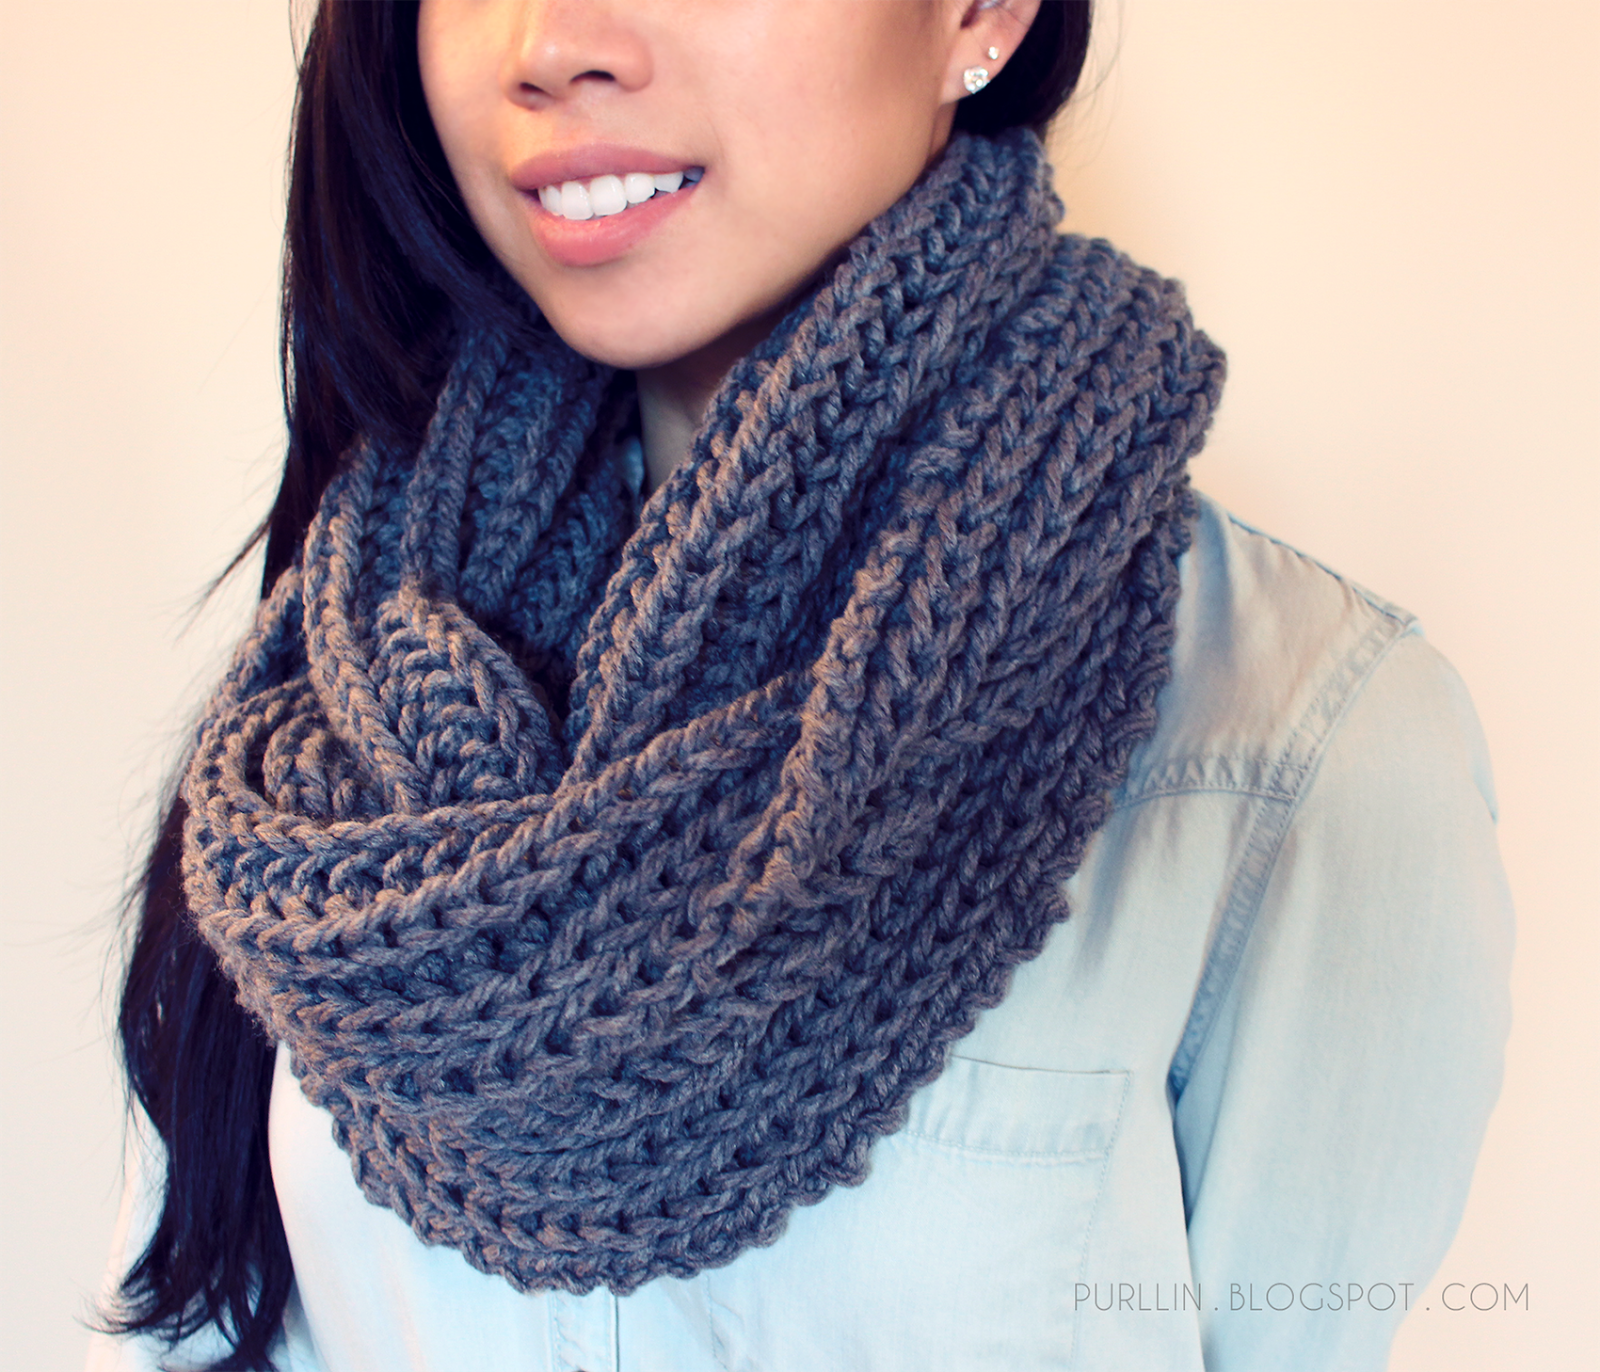 Fairisle Knitting Patterns : Purllin: Textured November Infinity Scarf Free Pattern